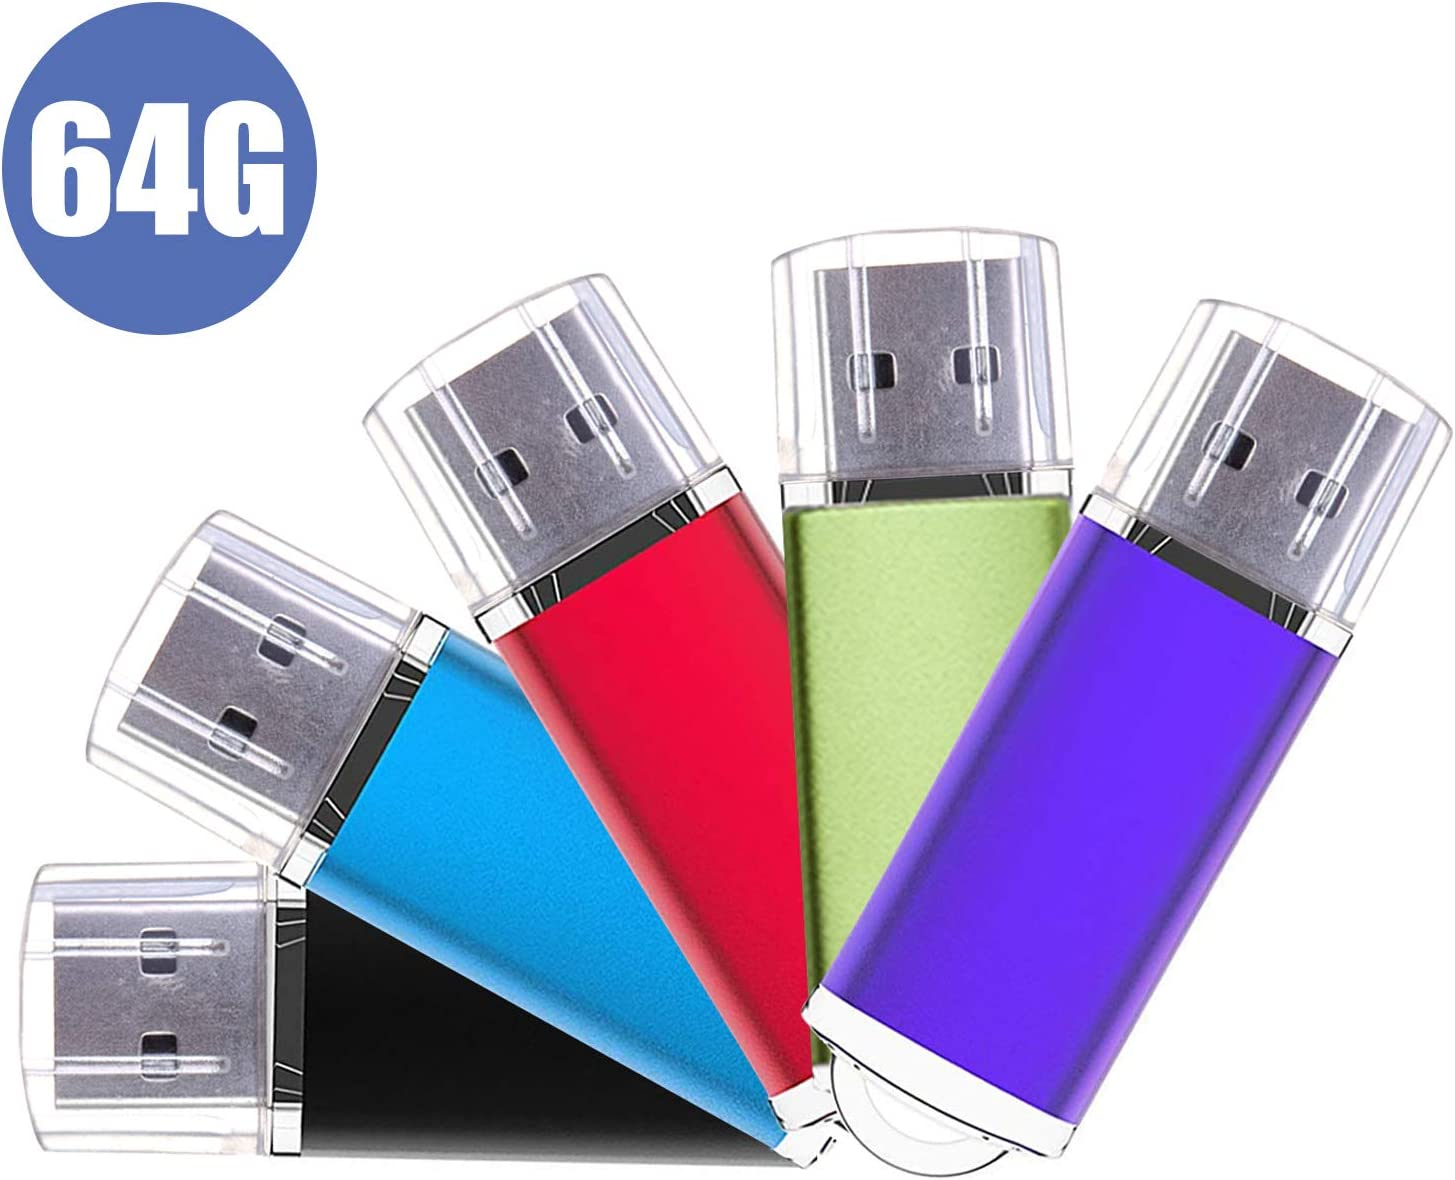 USB Flash Drive,5 Pack 64GB Pen Thumb Drives Jump Drive Memory External Storage Stick with Keychain Design /& Led Indicator 5 Mixed Color